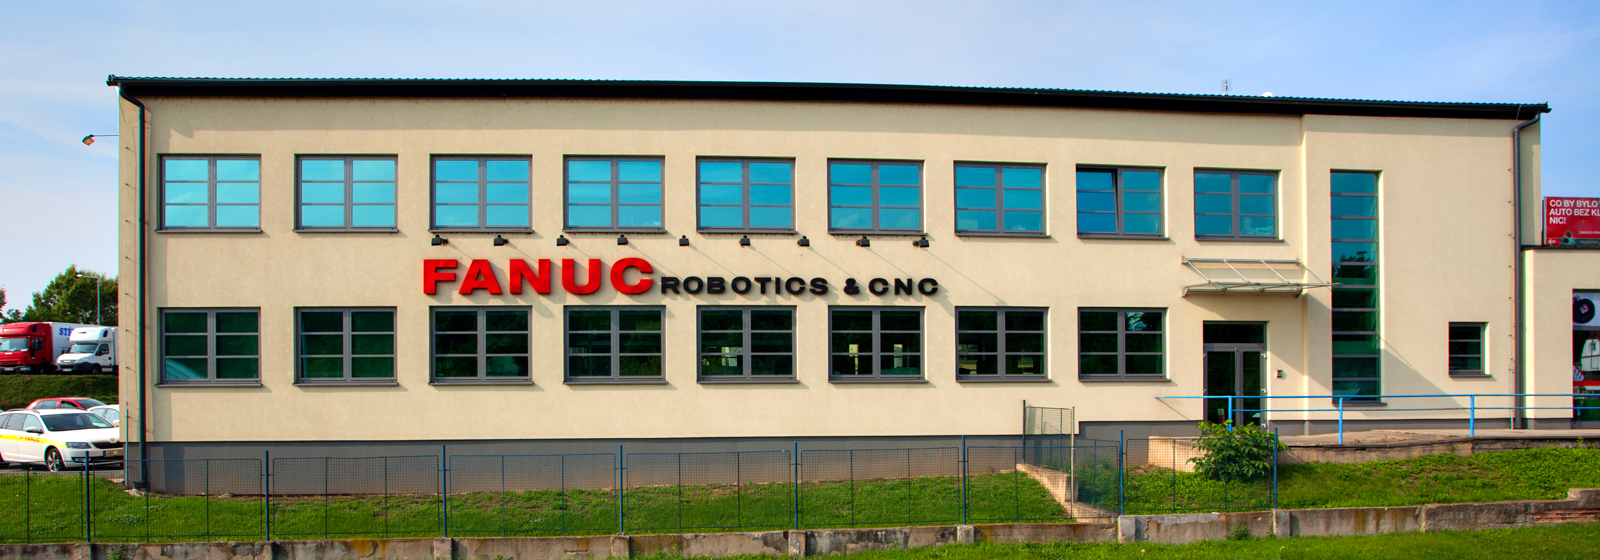 FANUC Czech building